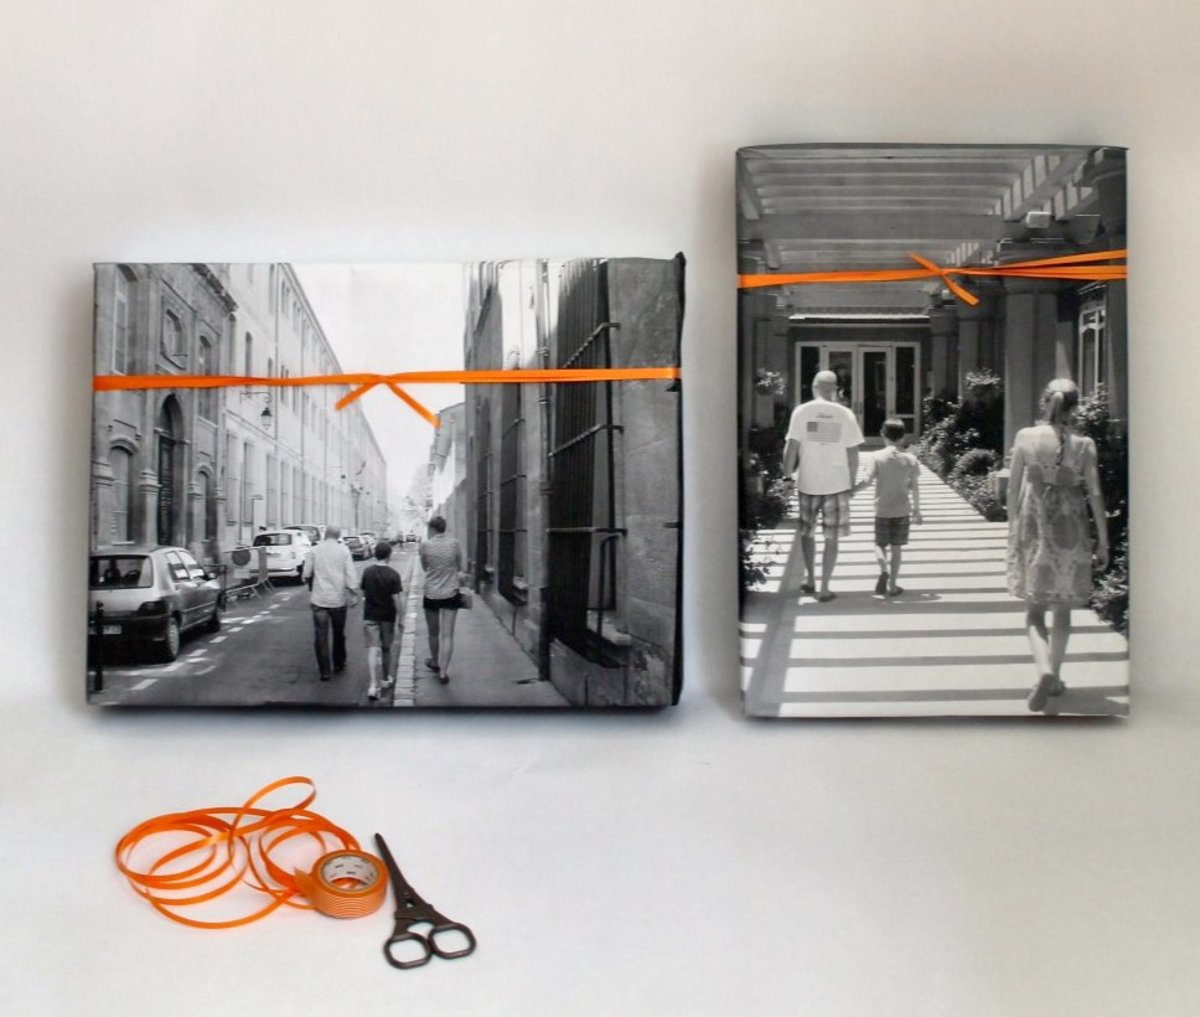 Custom photo paper is a clever way to dress up that gift for dad or grandpa this Father's Day.